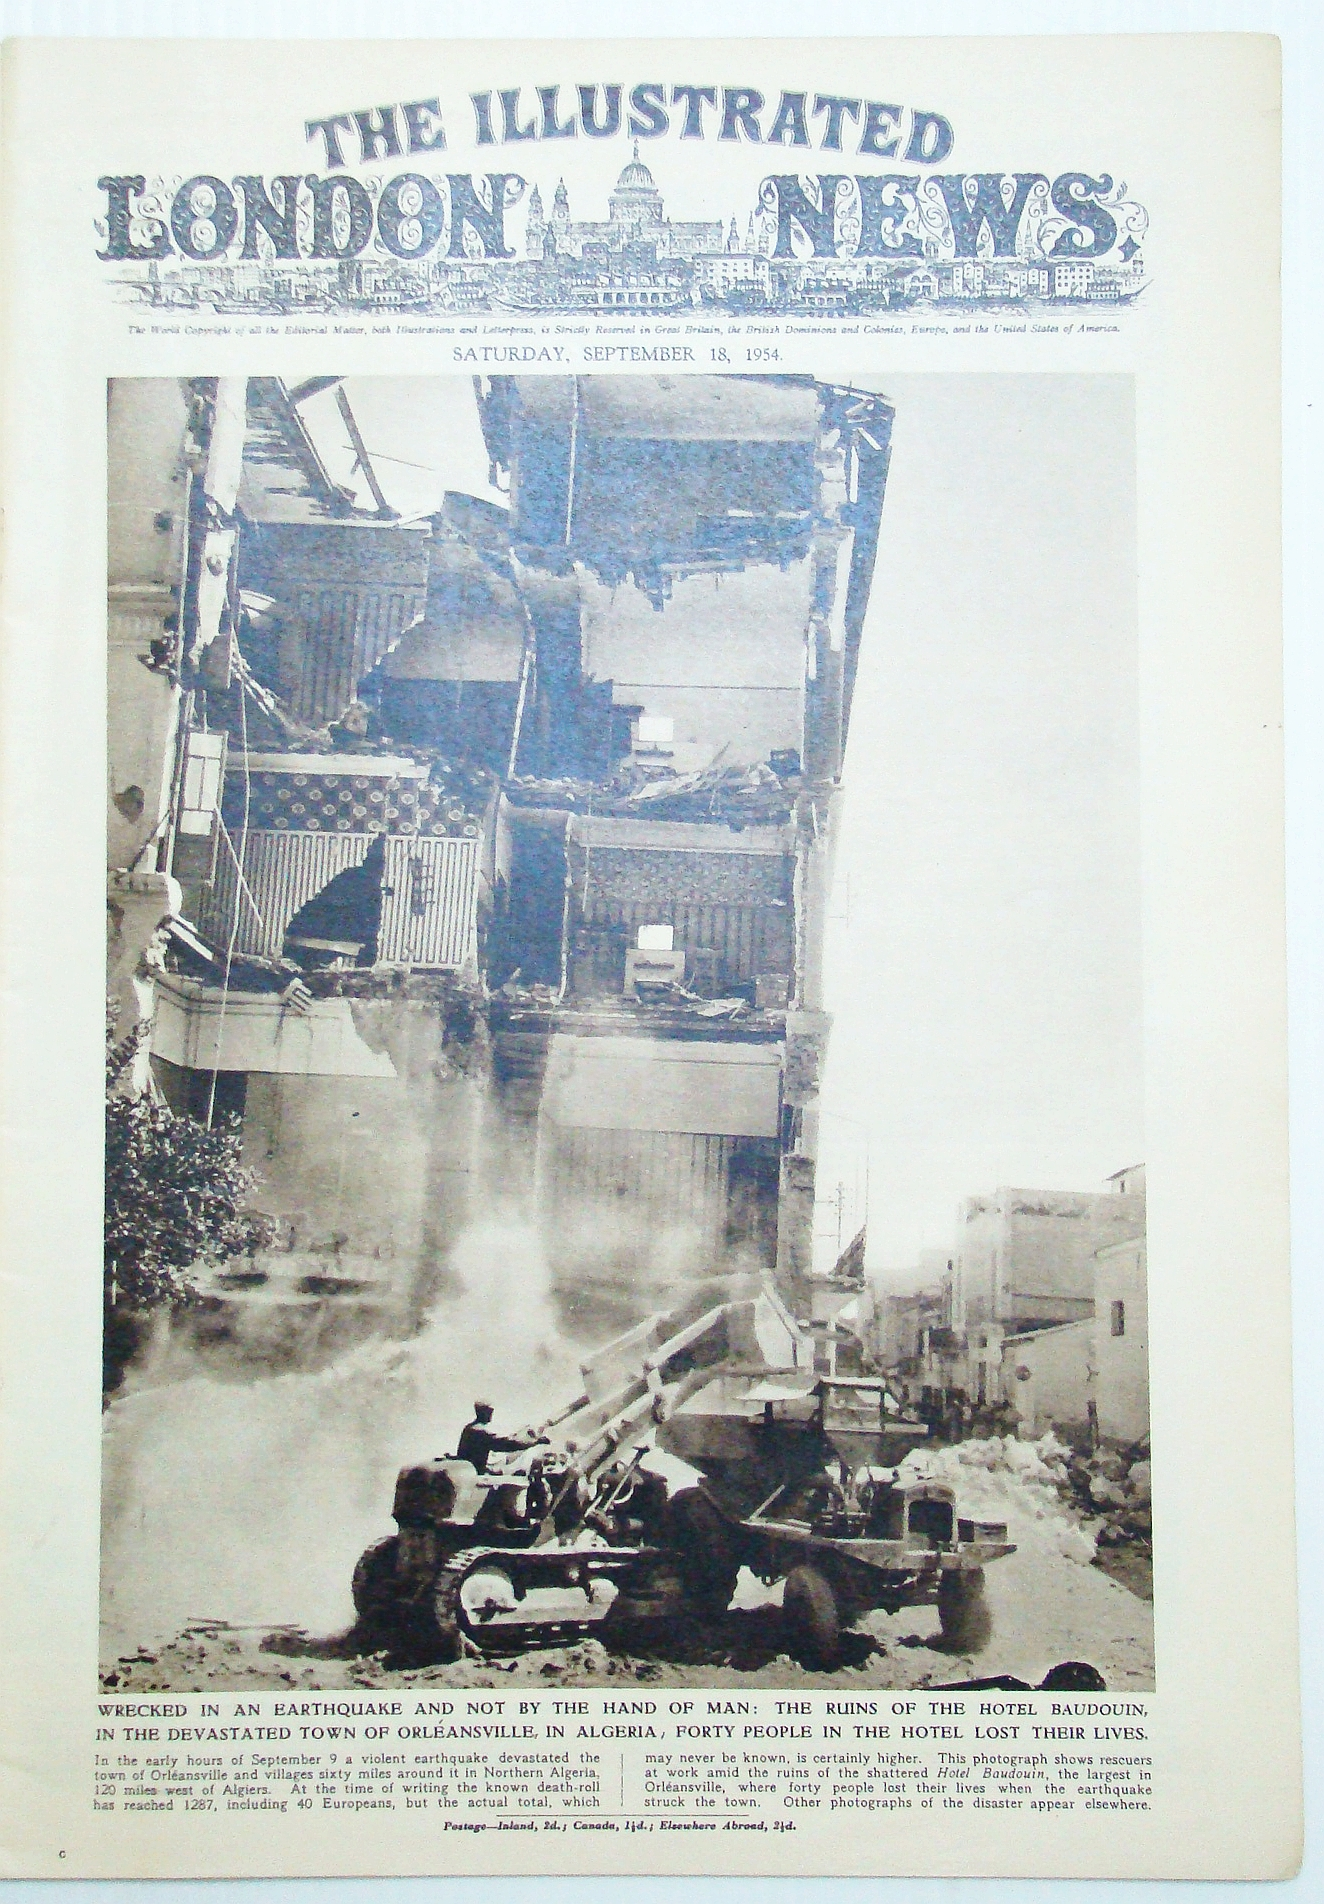 Image for The Illustrated London News (ILN), September (Sept.) 18, 1954: Formosa (Taiwan) Prepares for Communist Invasion